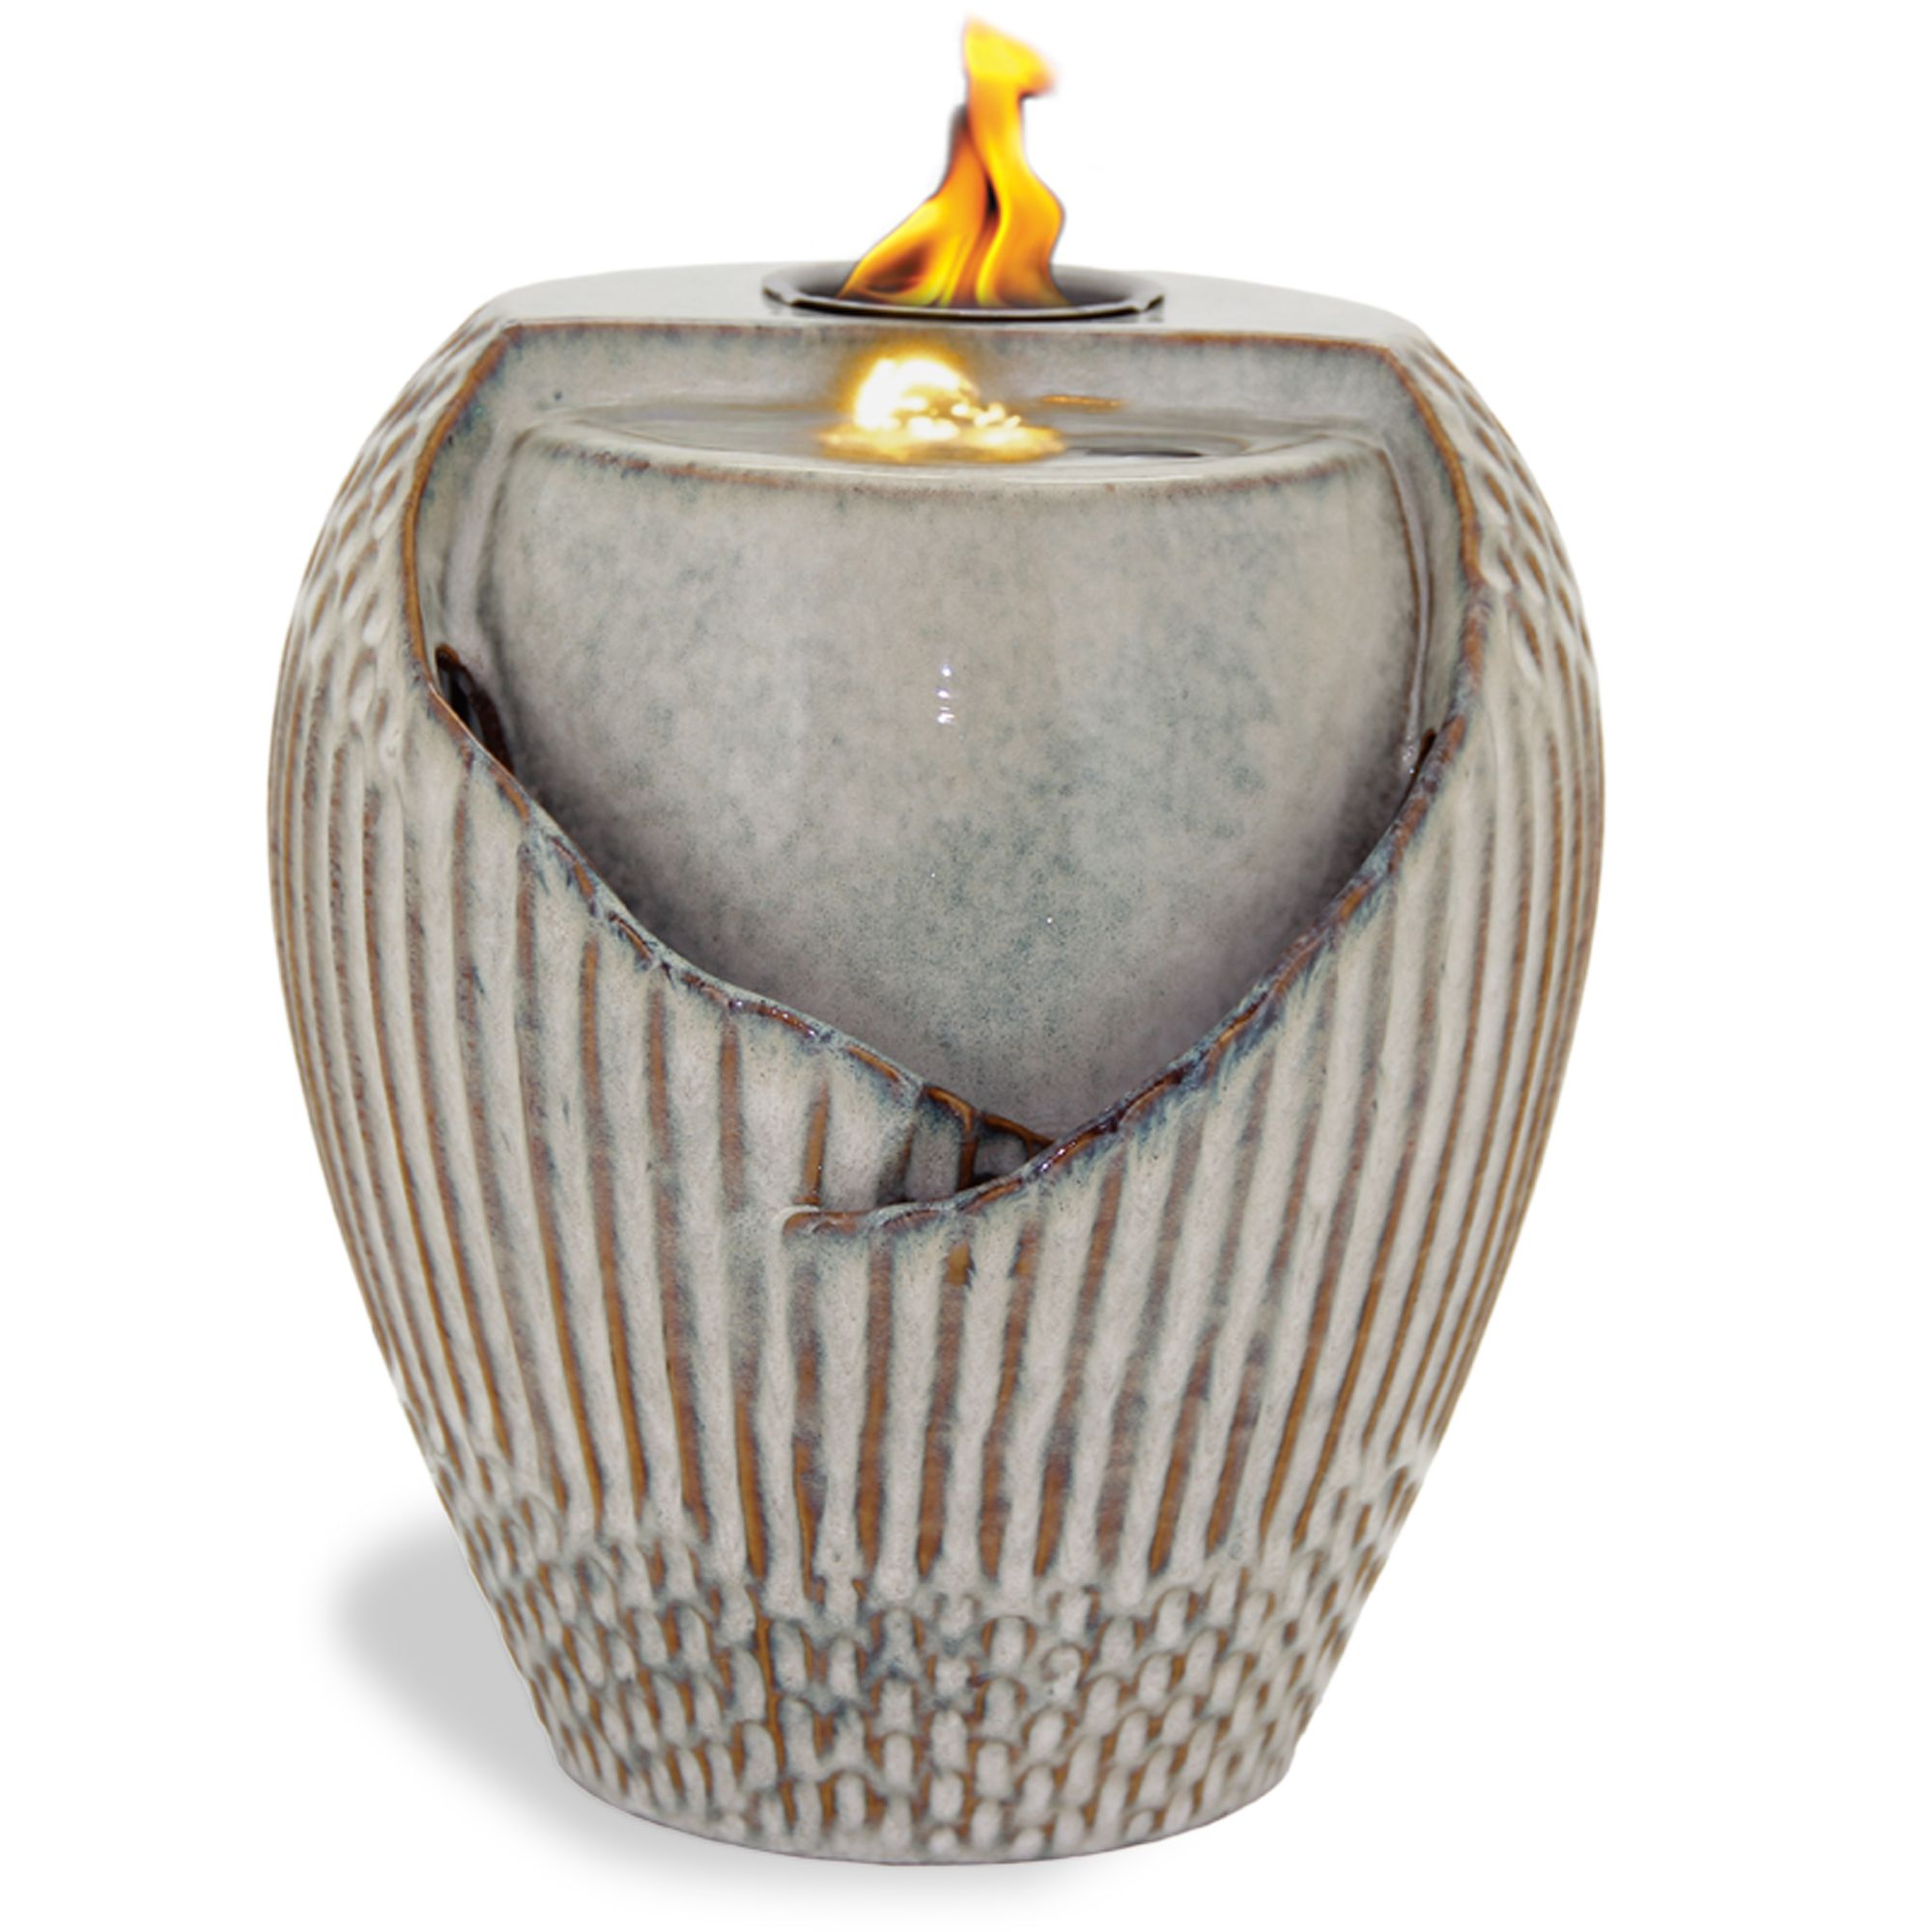 Urn Flame Fountain Kmart With Images Fountains For Sale